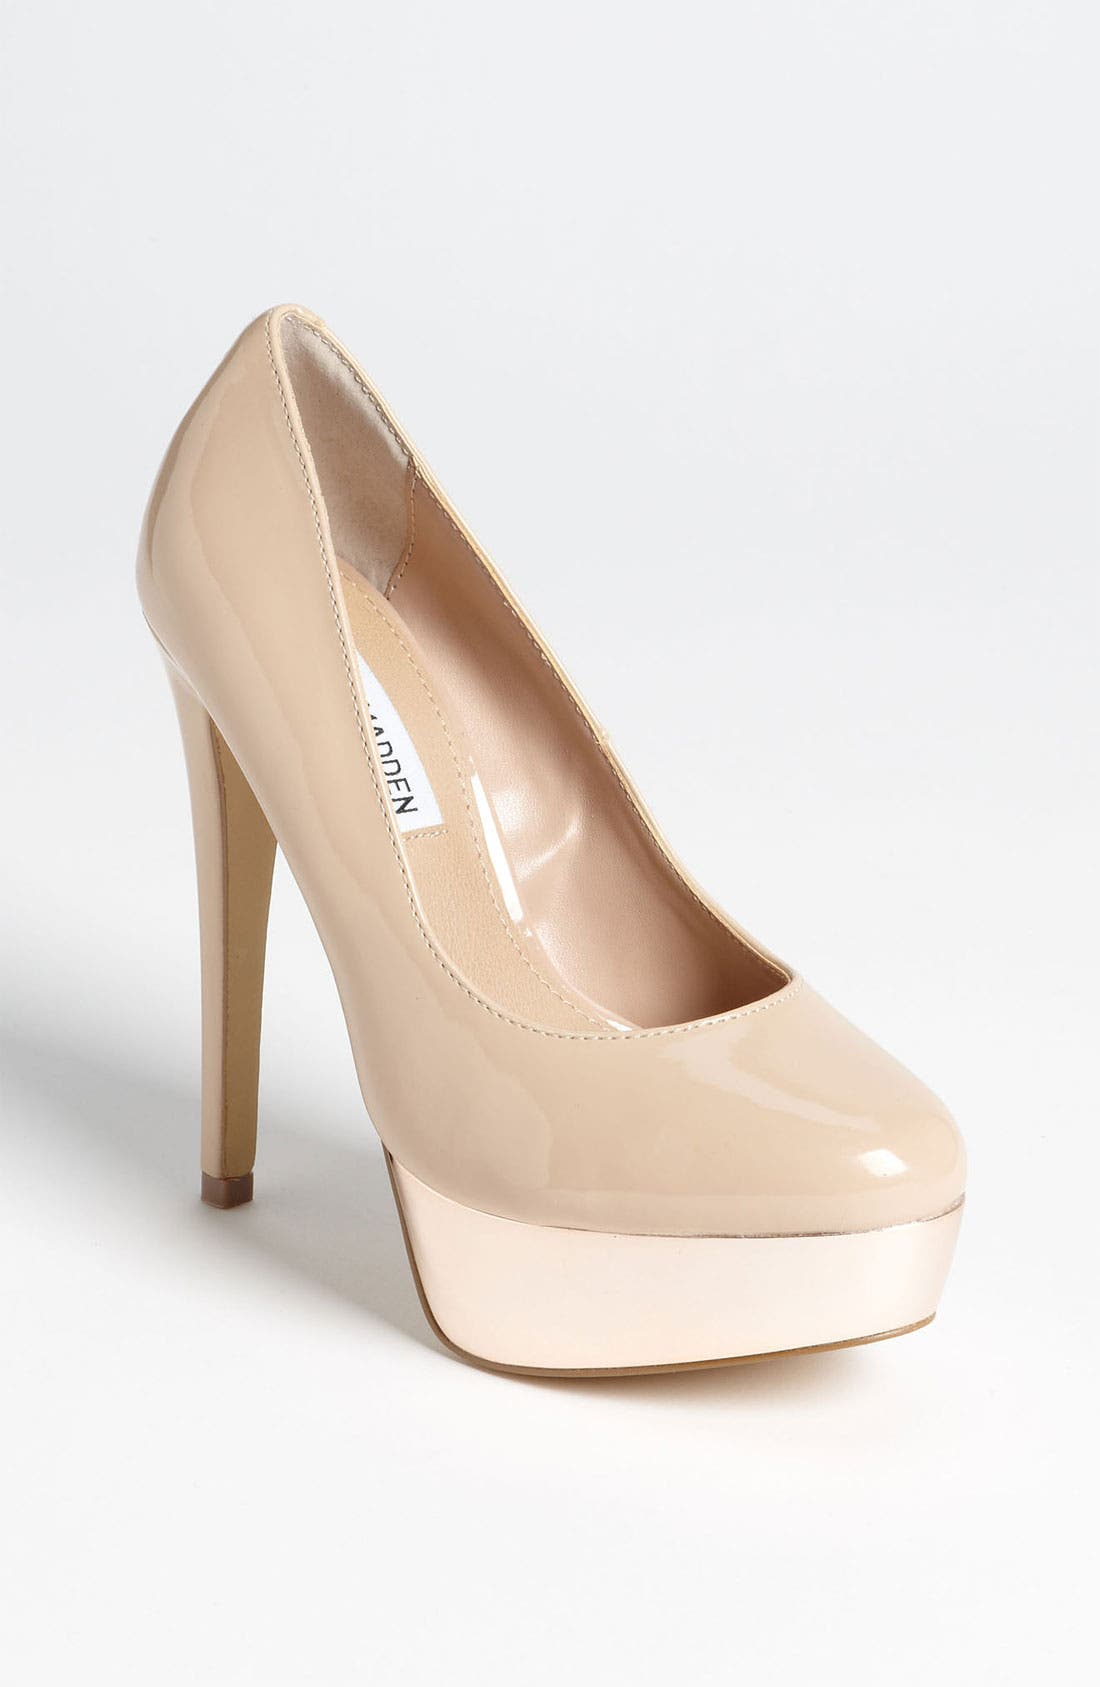 Alternate Image 1 Selected - Steve Madden 'Darrring' Pump